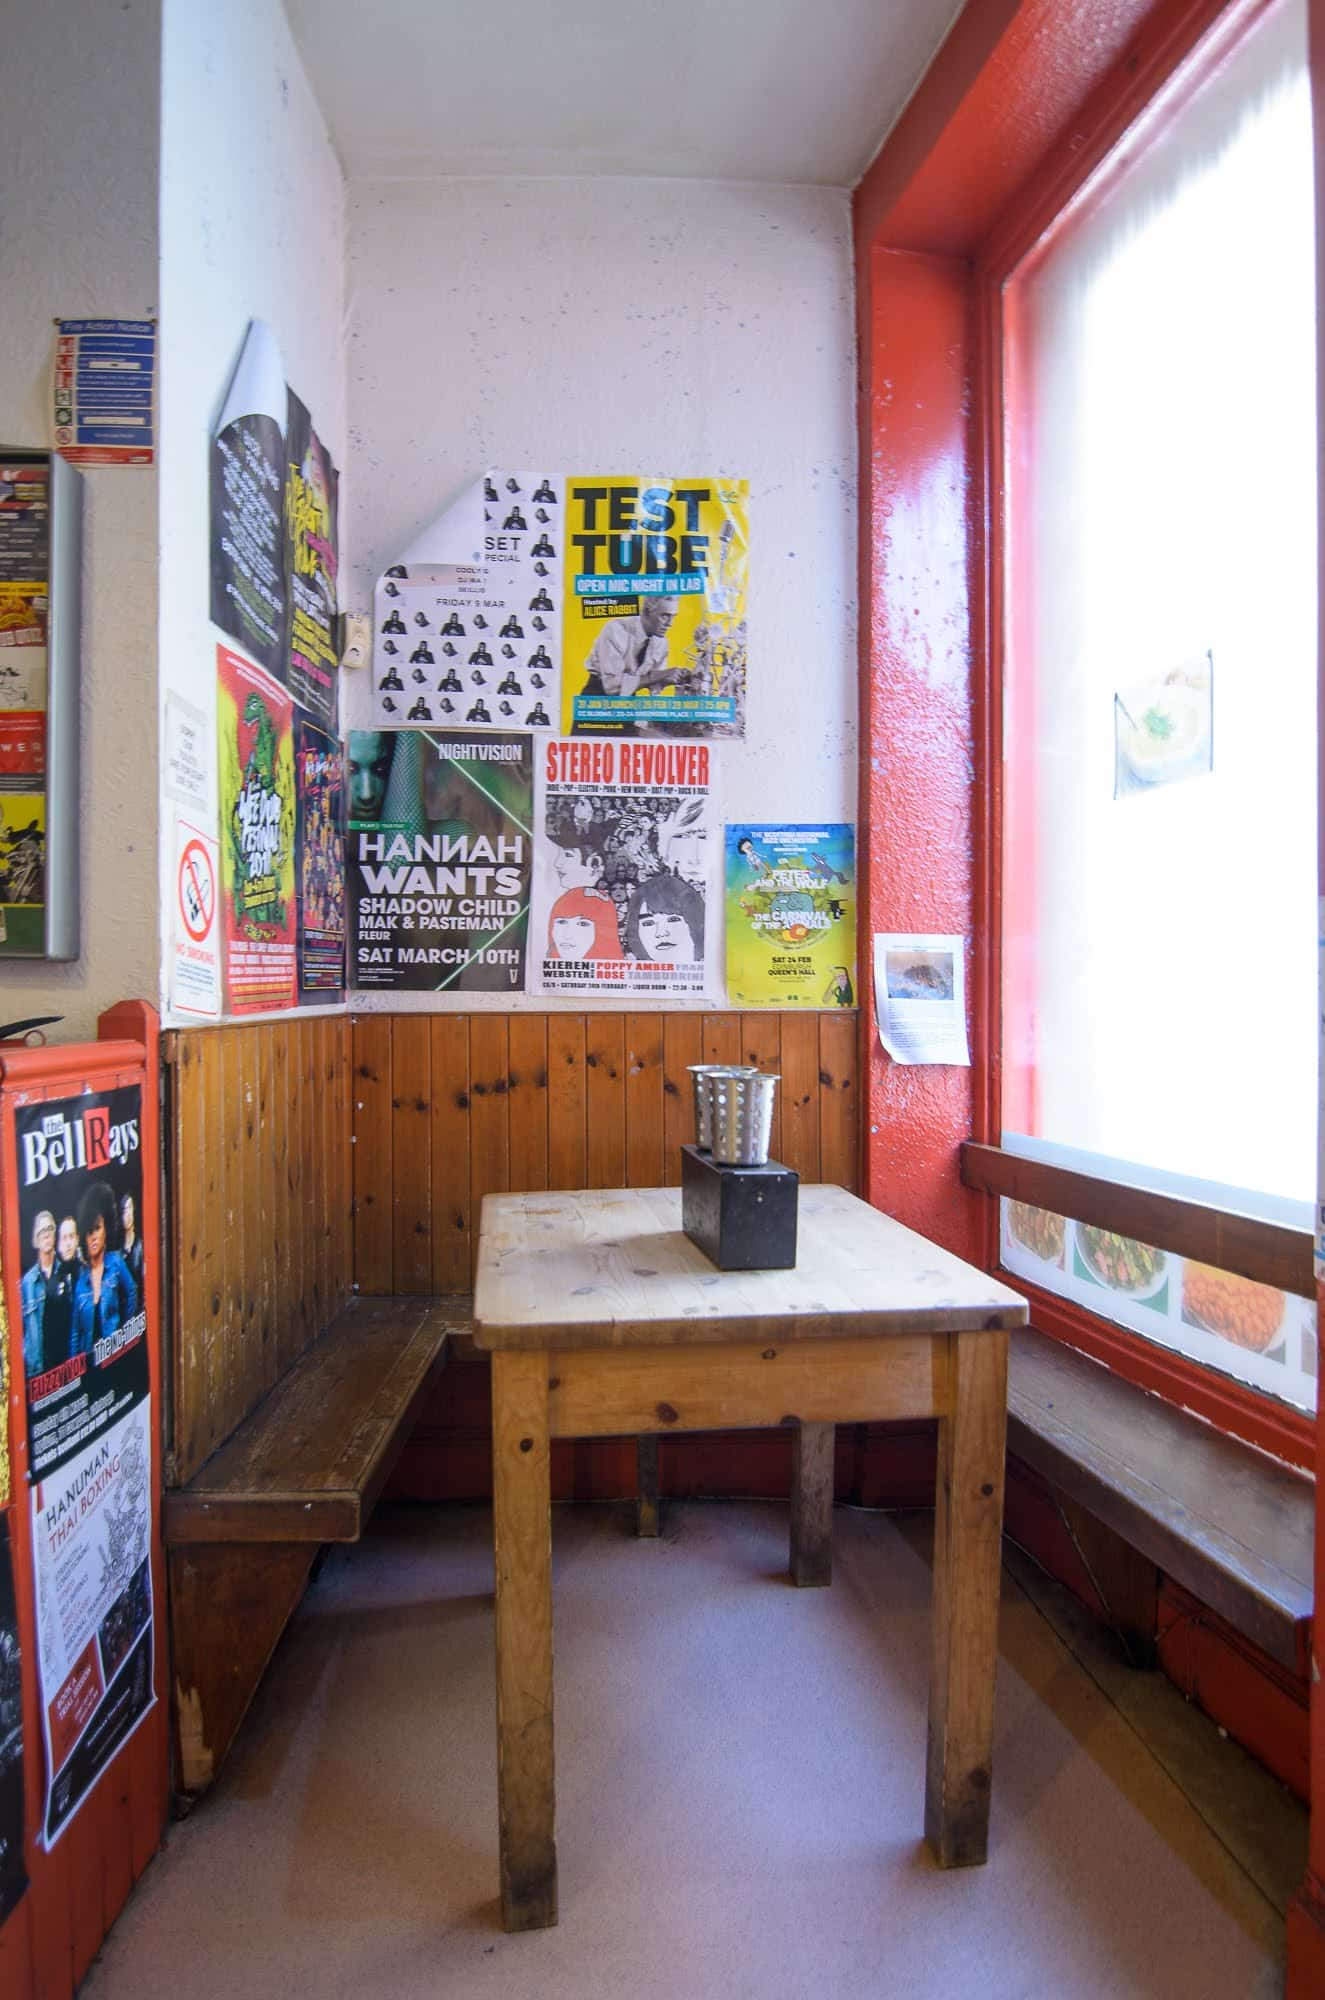 The Baked Potato Shop's only table